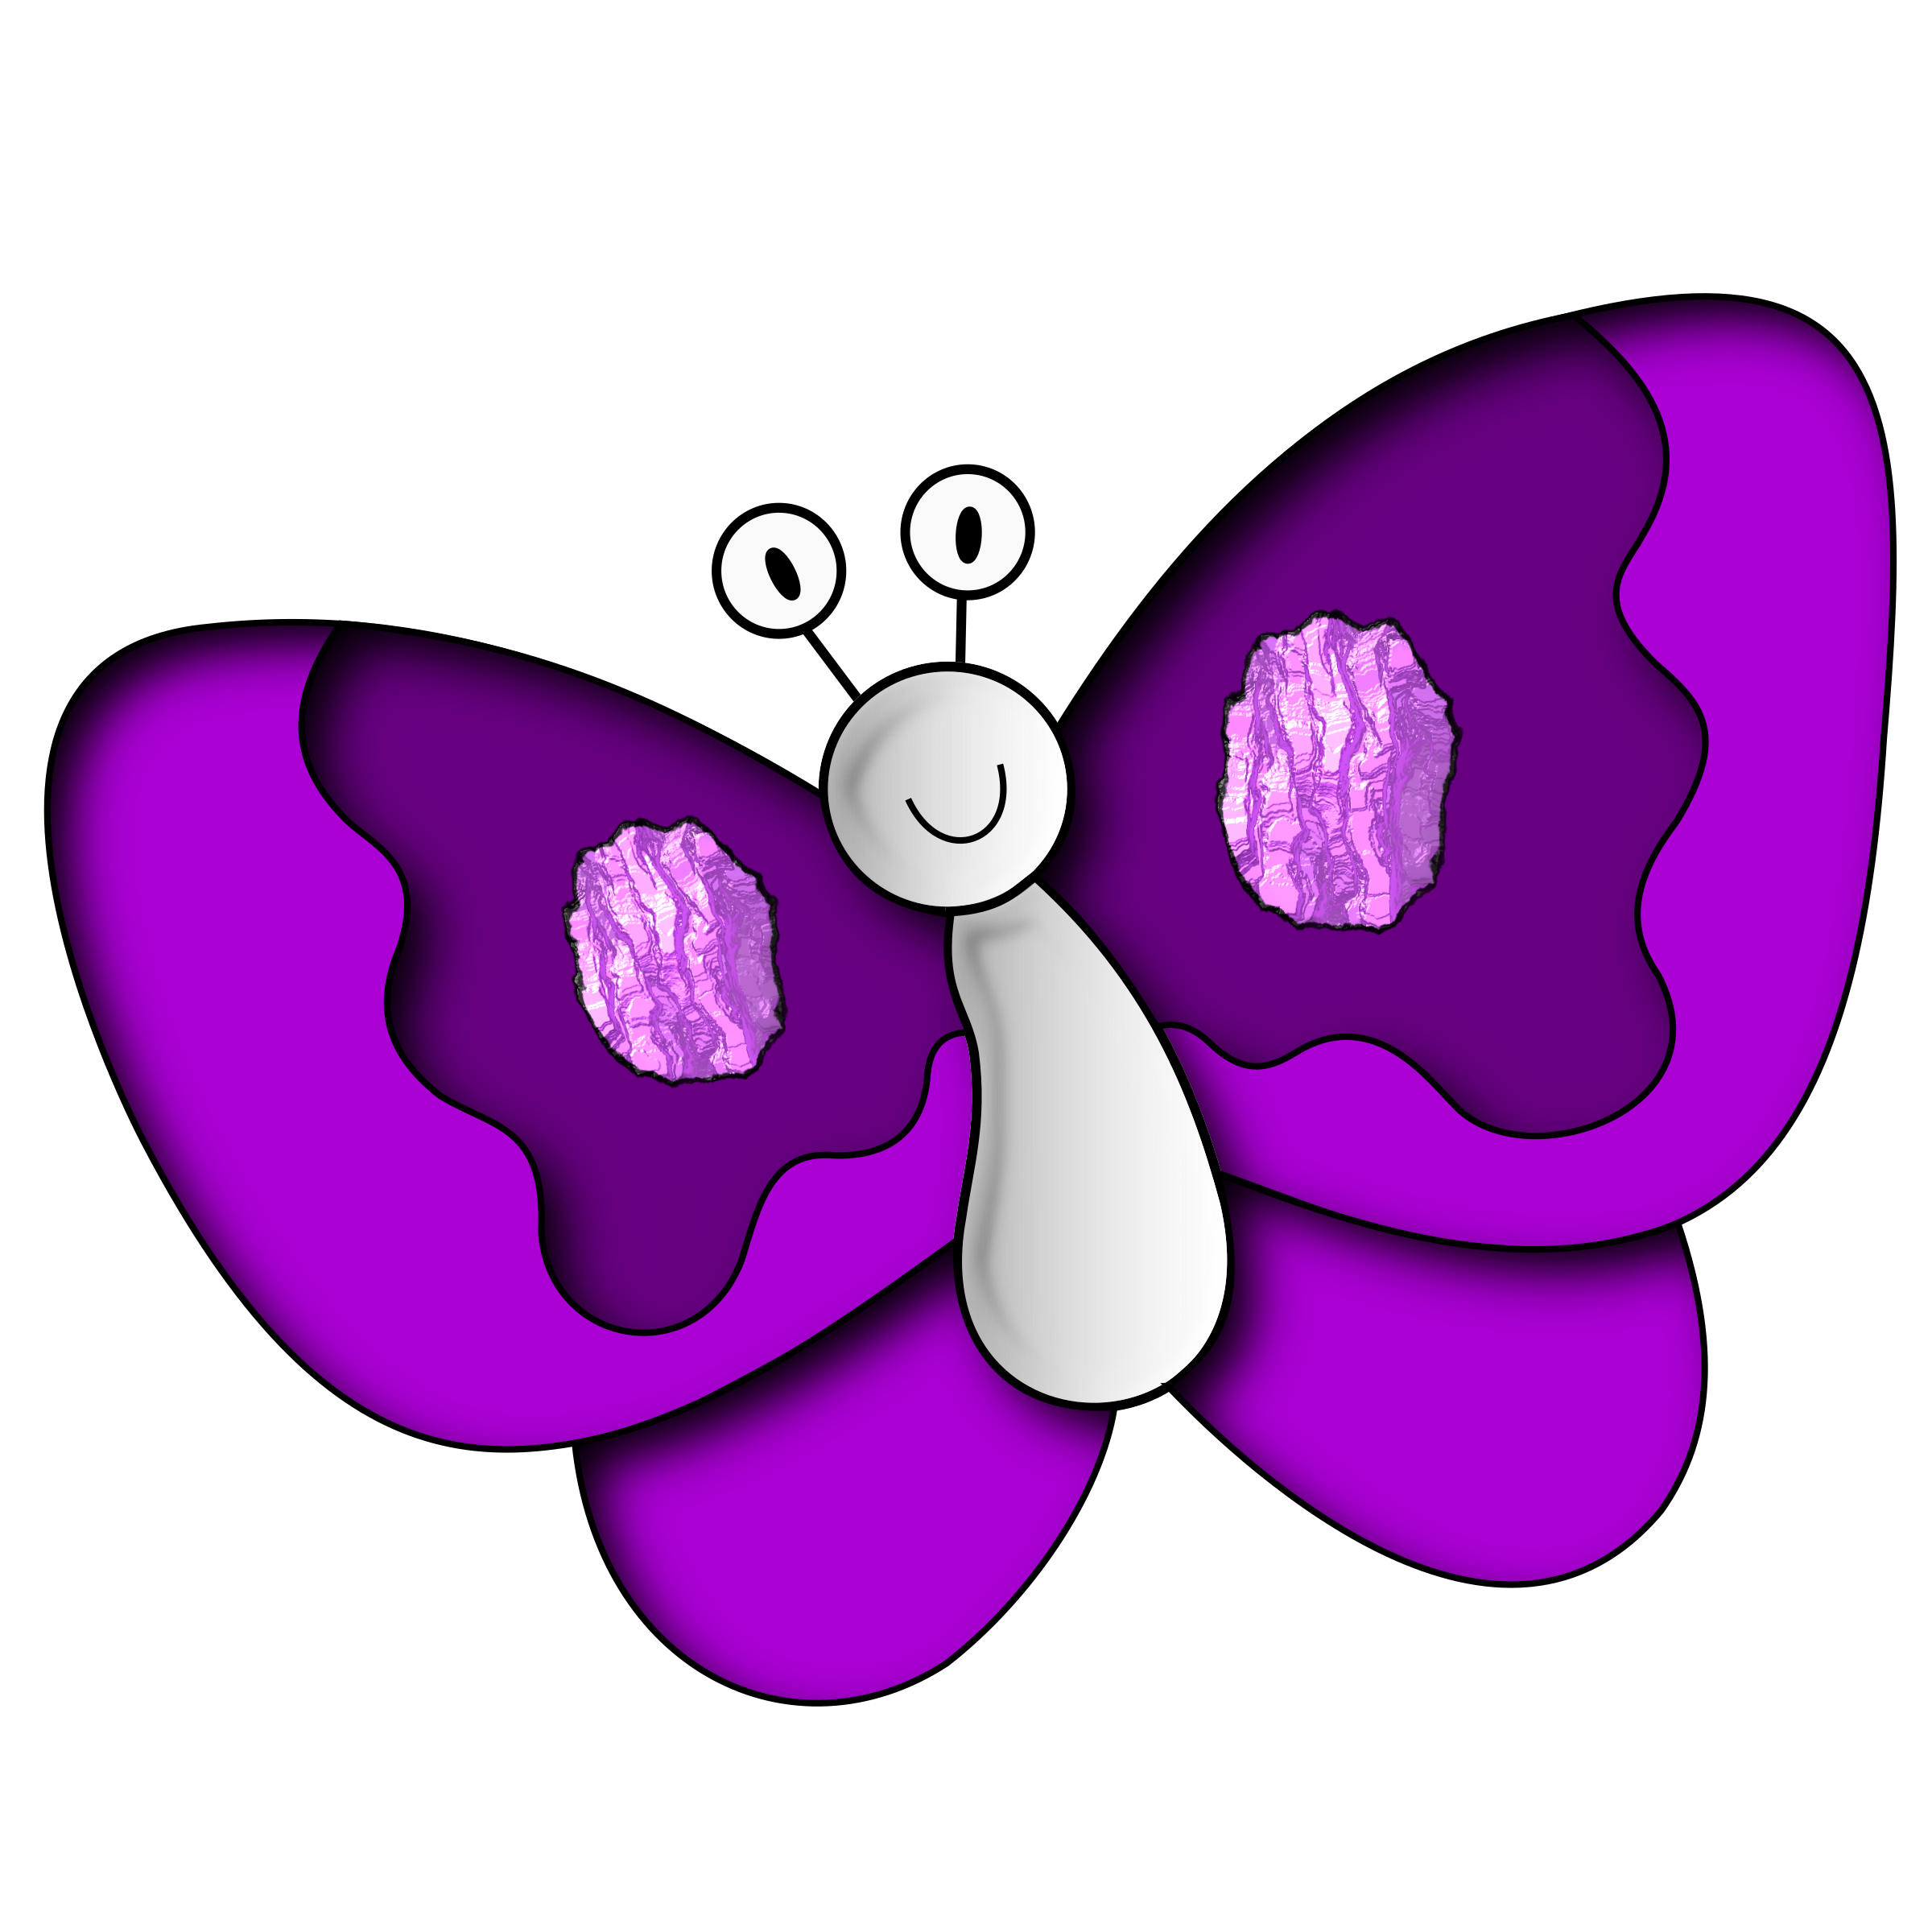 Butterfly big image png. Purple clipart